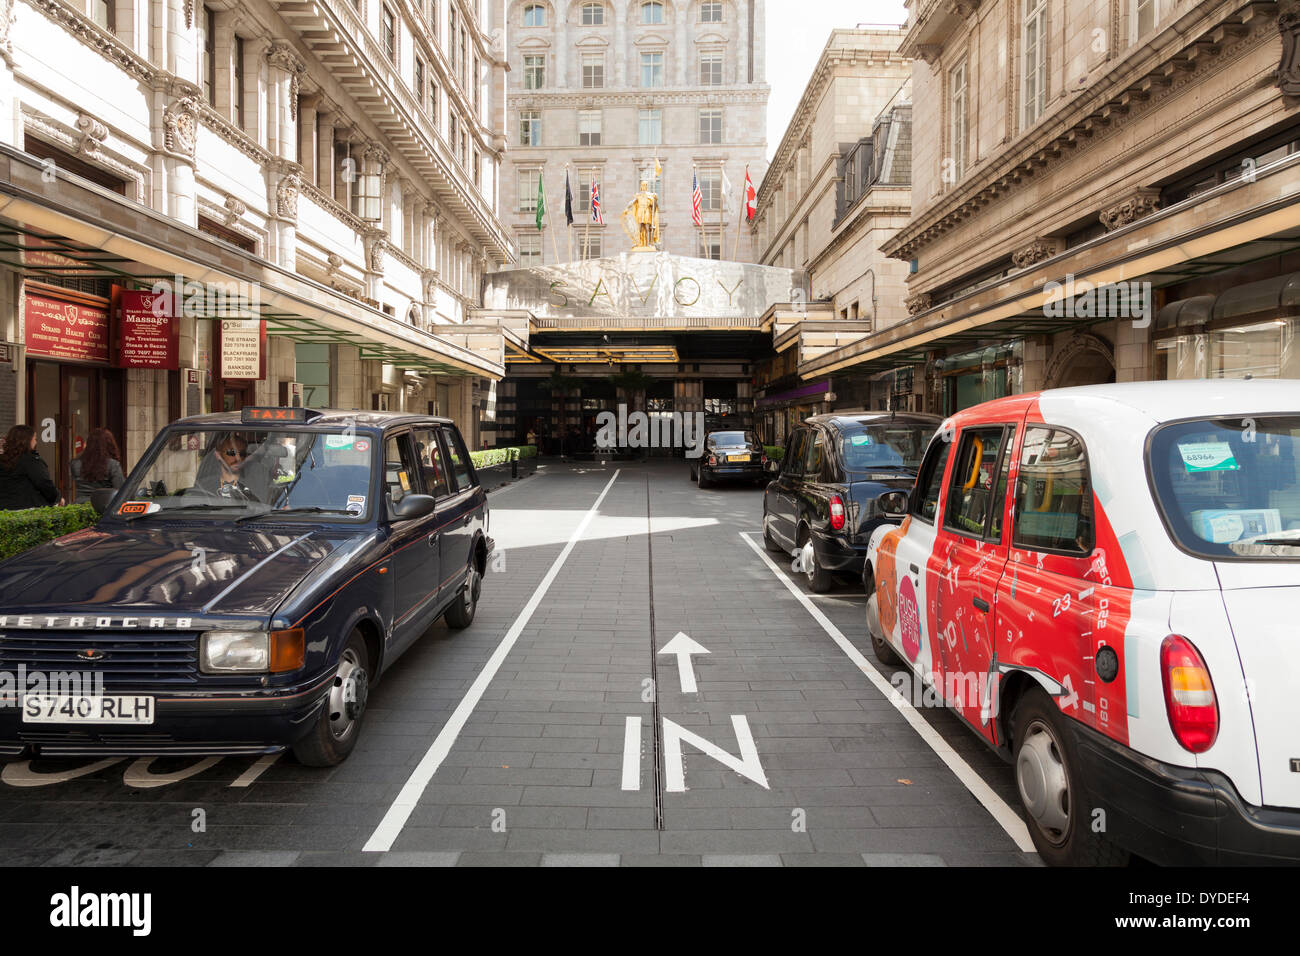 Taxis parked outside the main entrance to Savoy Hotel in the Strand in London. - Stock Image